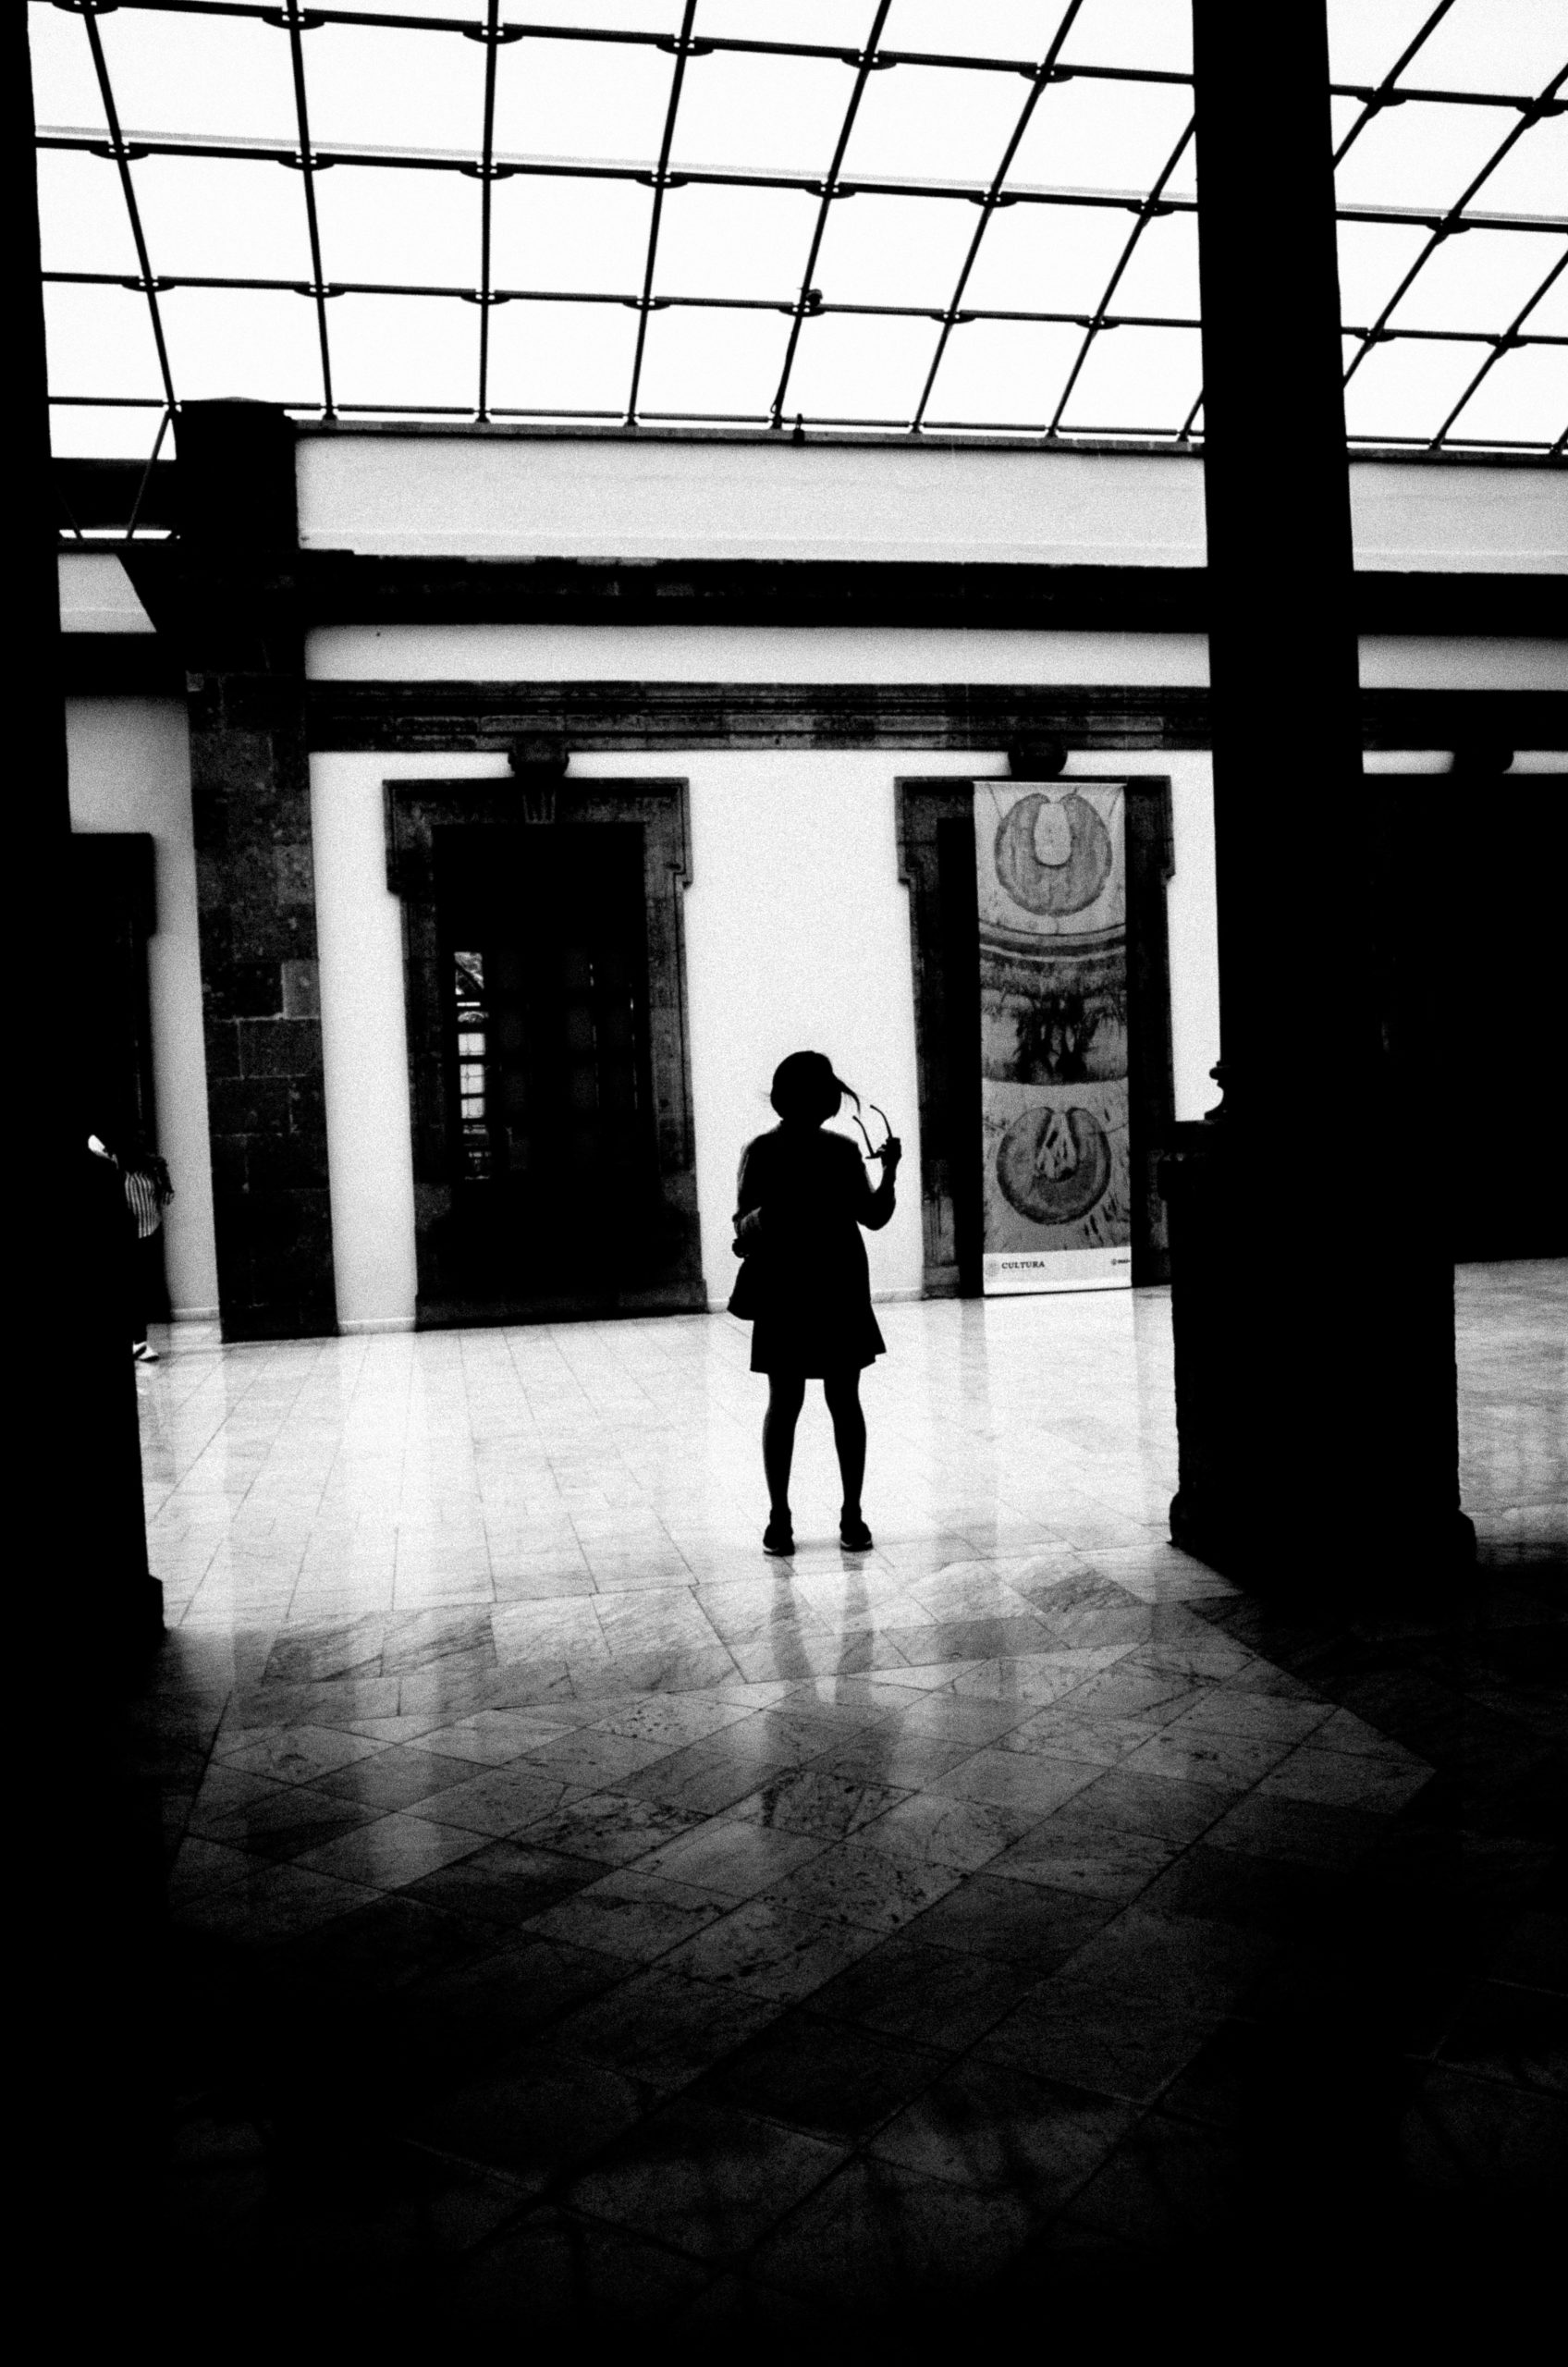 Cindy abstract silhouette Mexico City